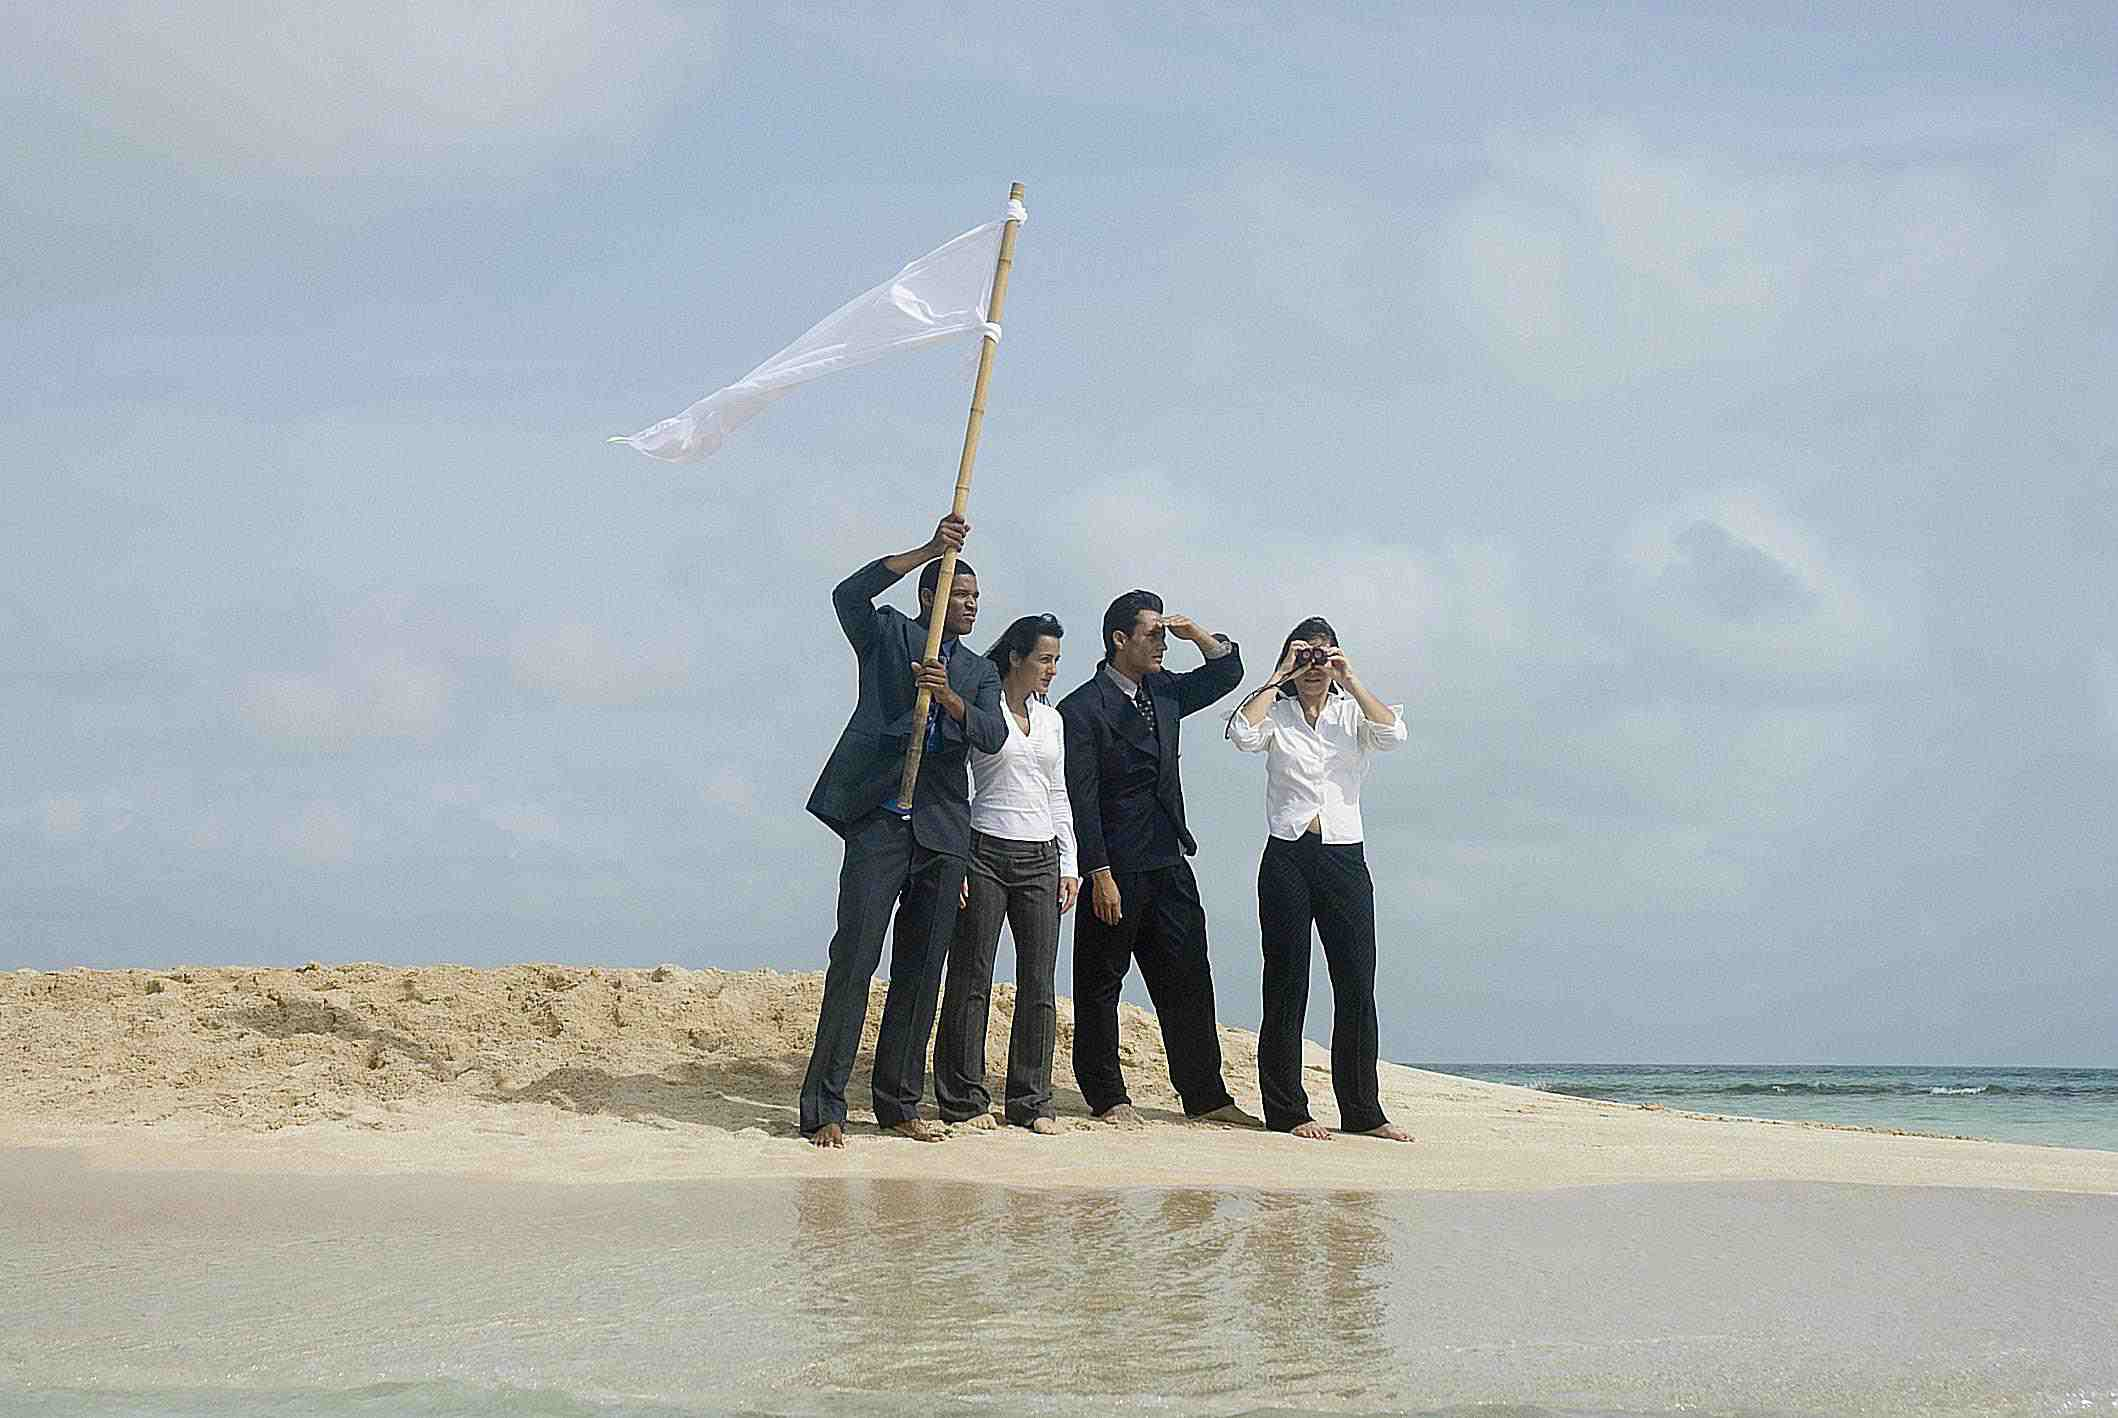 Business people stranded on island